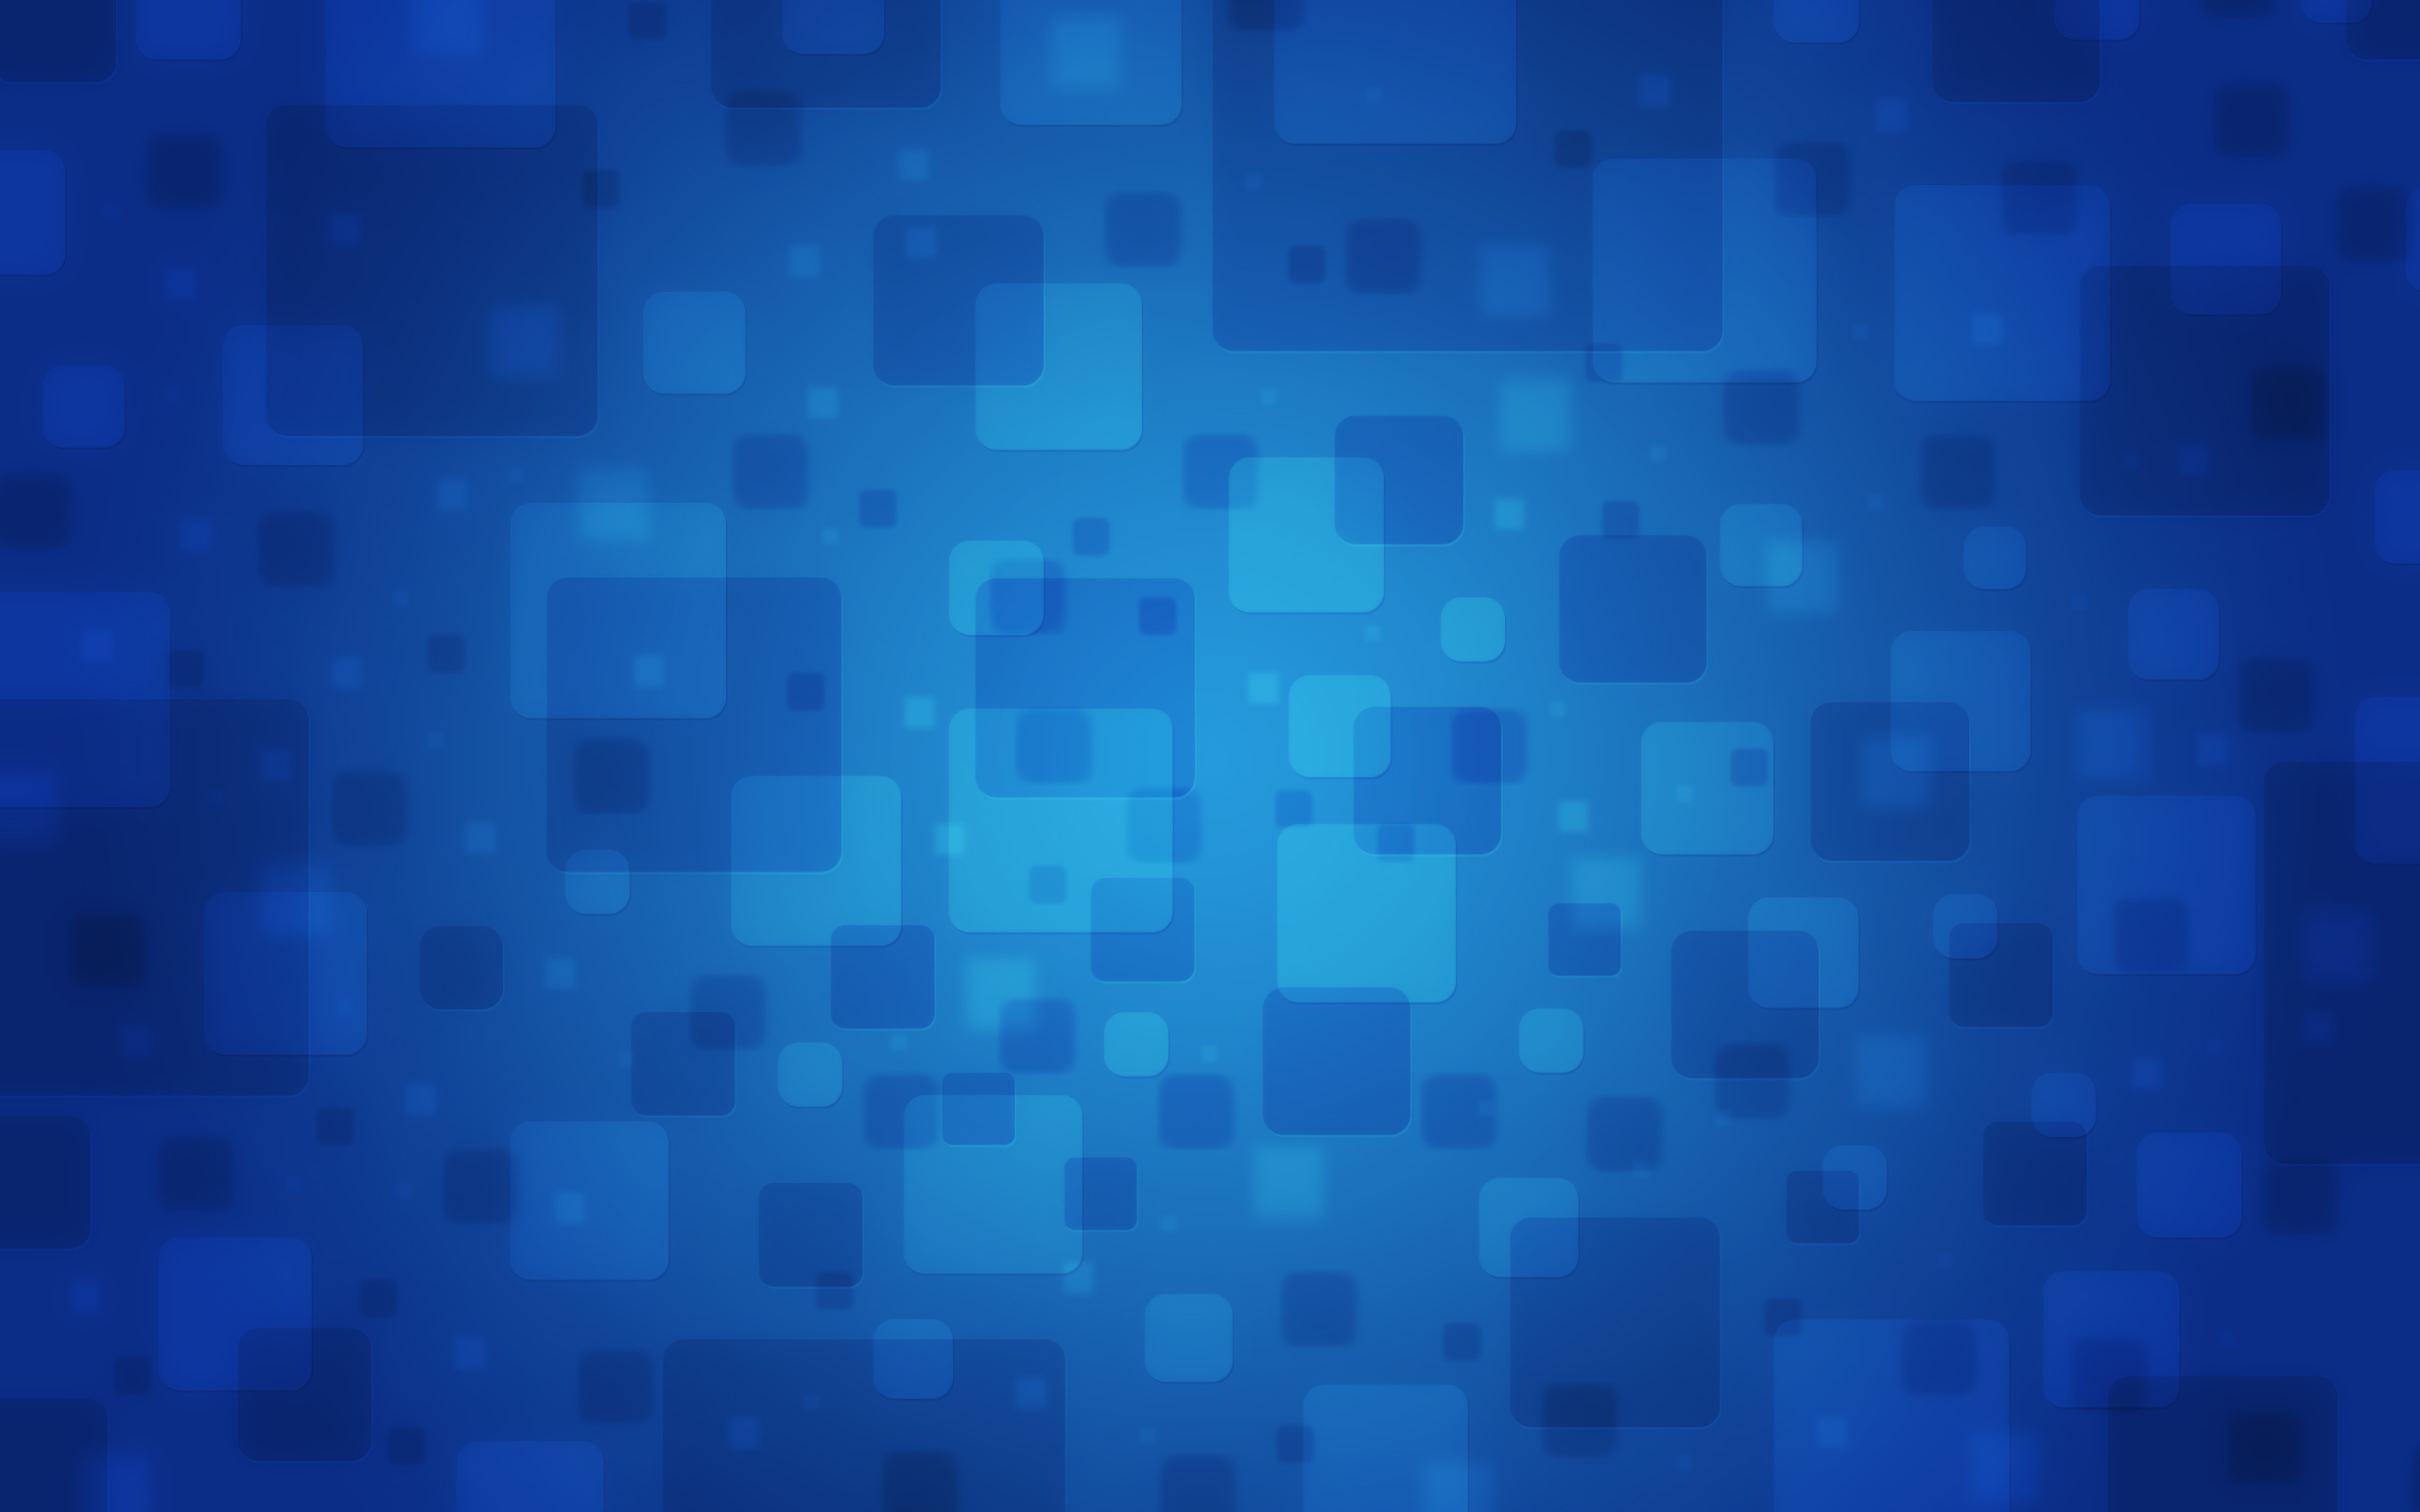 Blue Squares Wallpapers HD Wallpapers 2560x1600